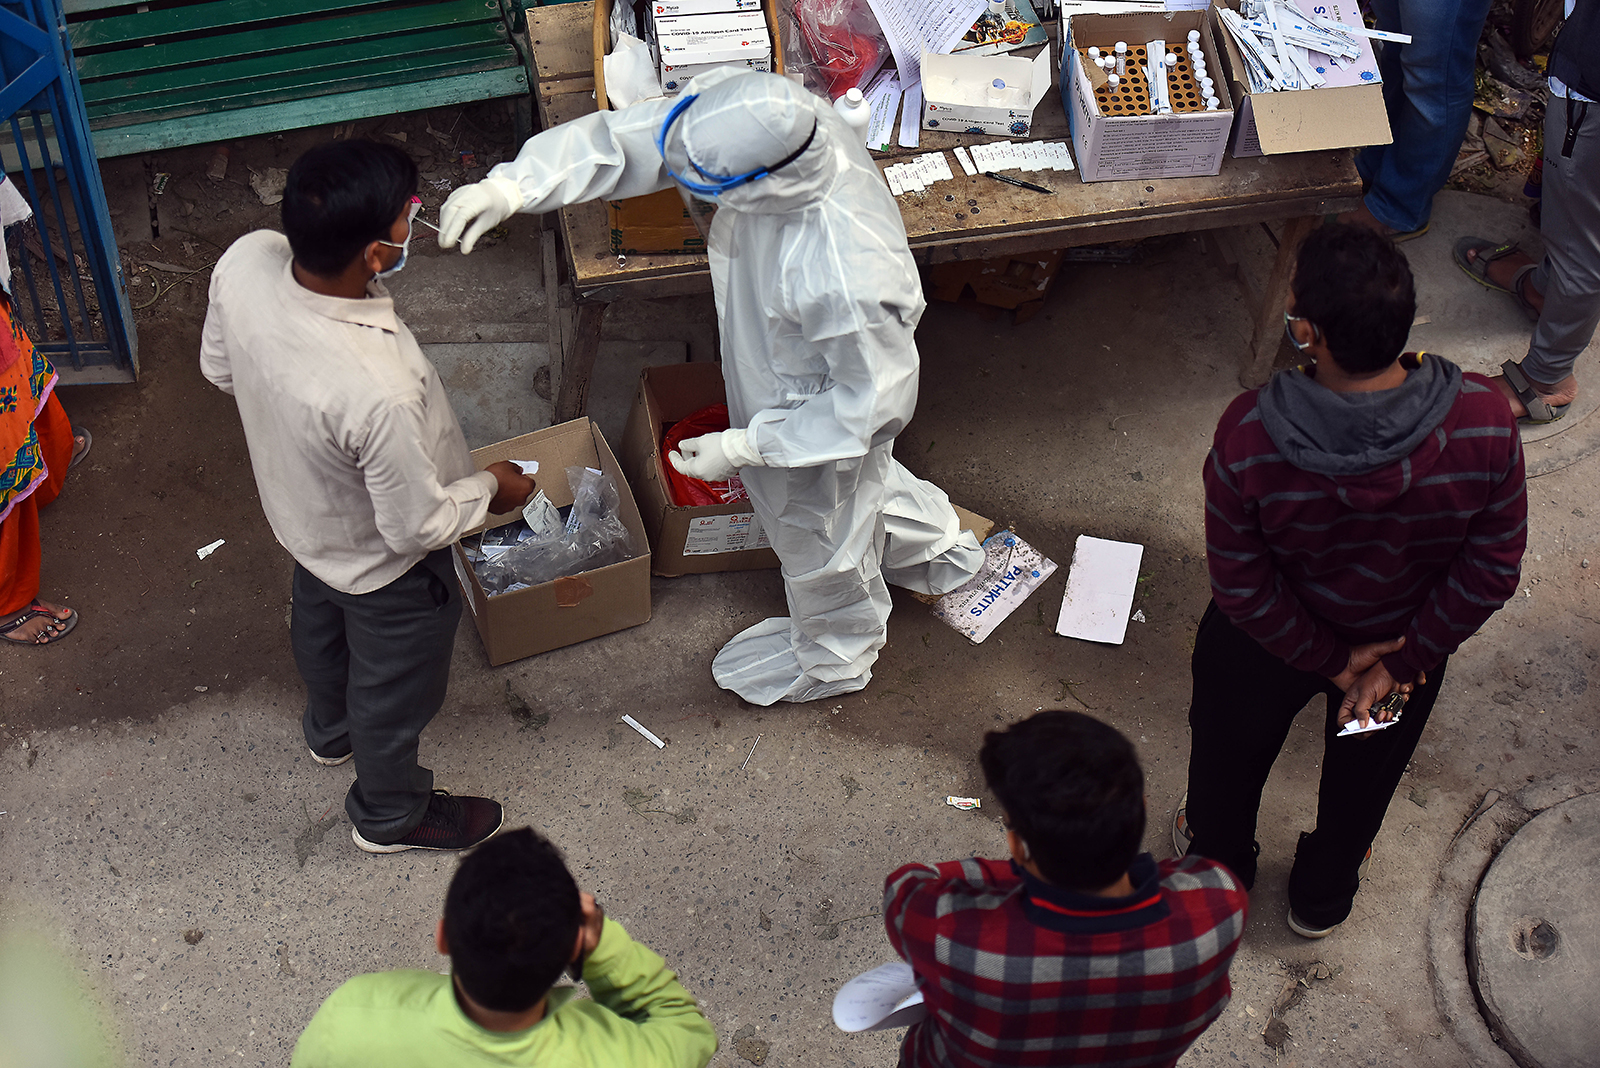 A health worker collects a swab sample from a man for Covid-19 test, at a dispensary in New Delhi, India, on December 5.